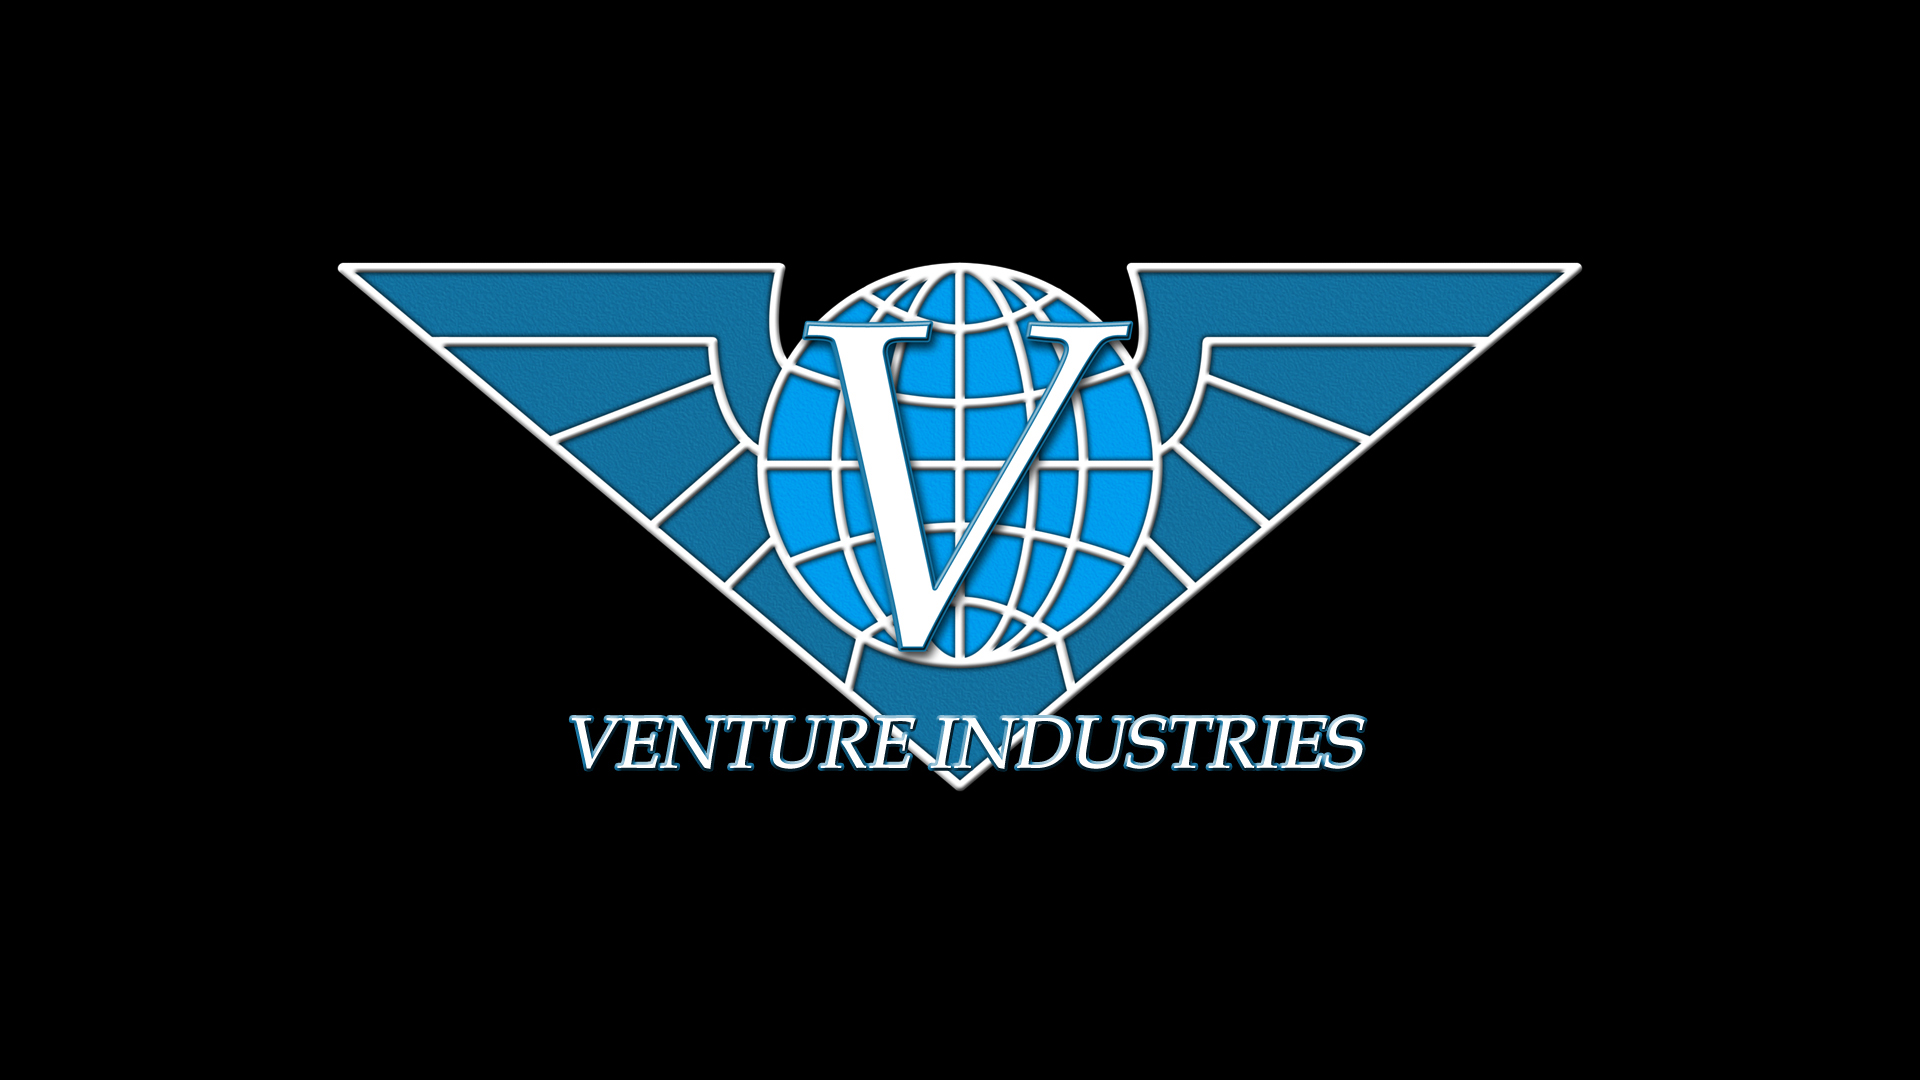 Download venture brothers the bros HD Wallpaper General 770273 1920x1080